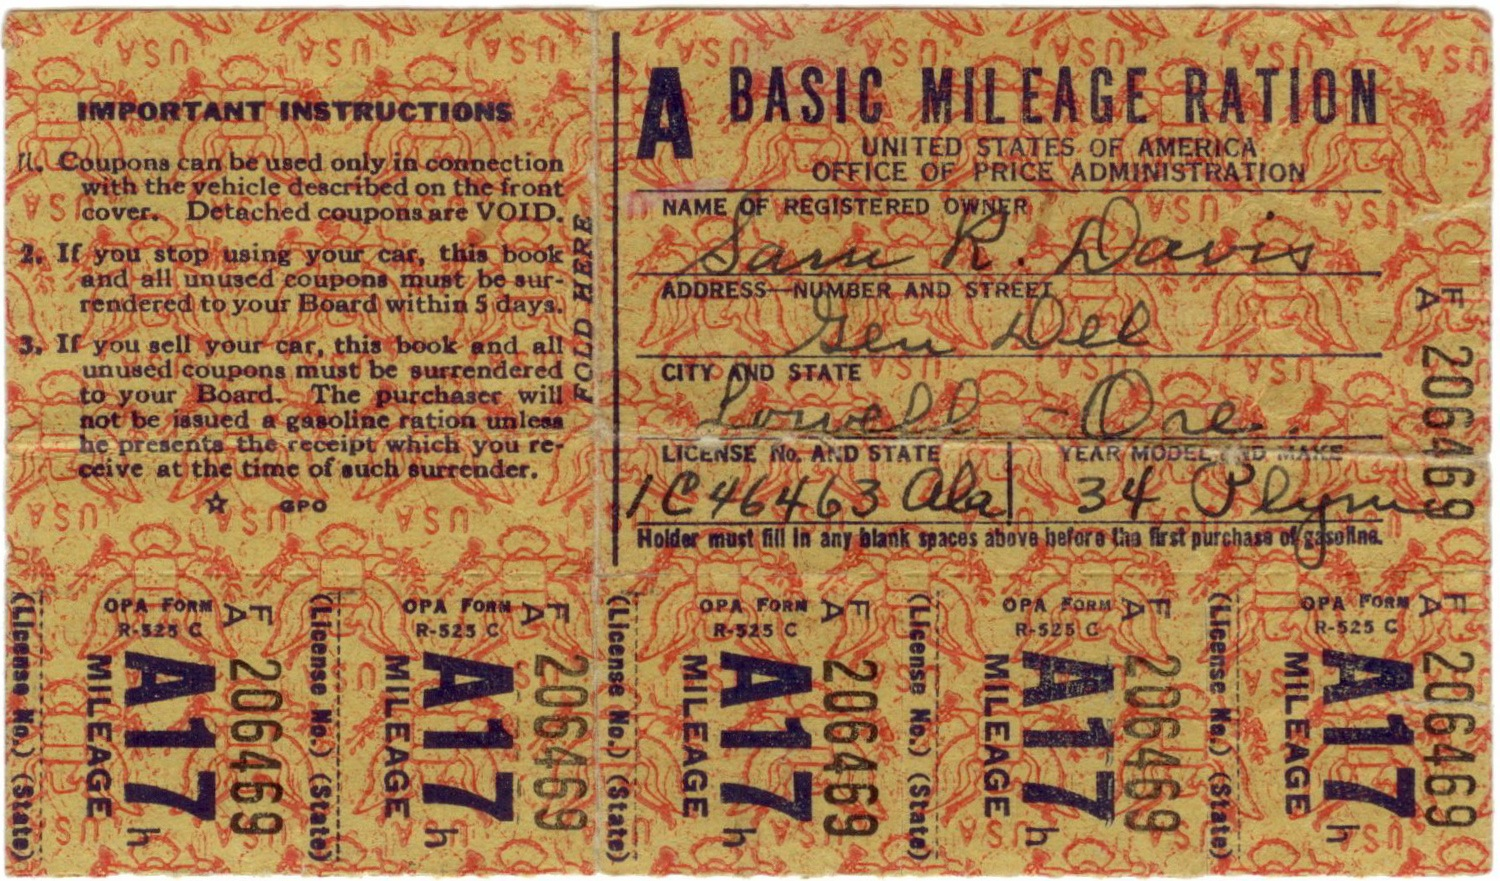 WWII_USA_Basic_Mileage_Ration_(front).jpg